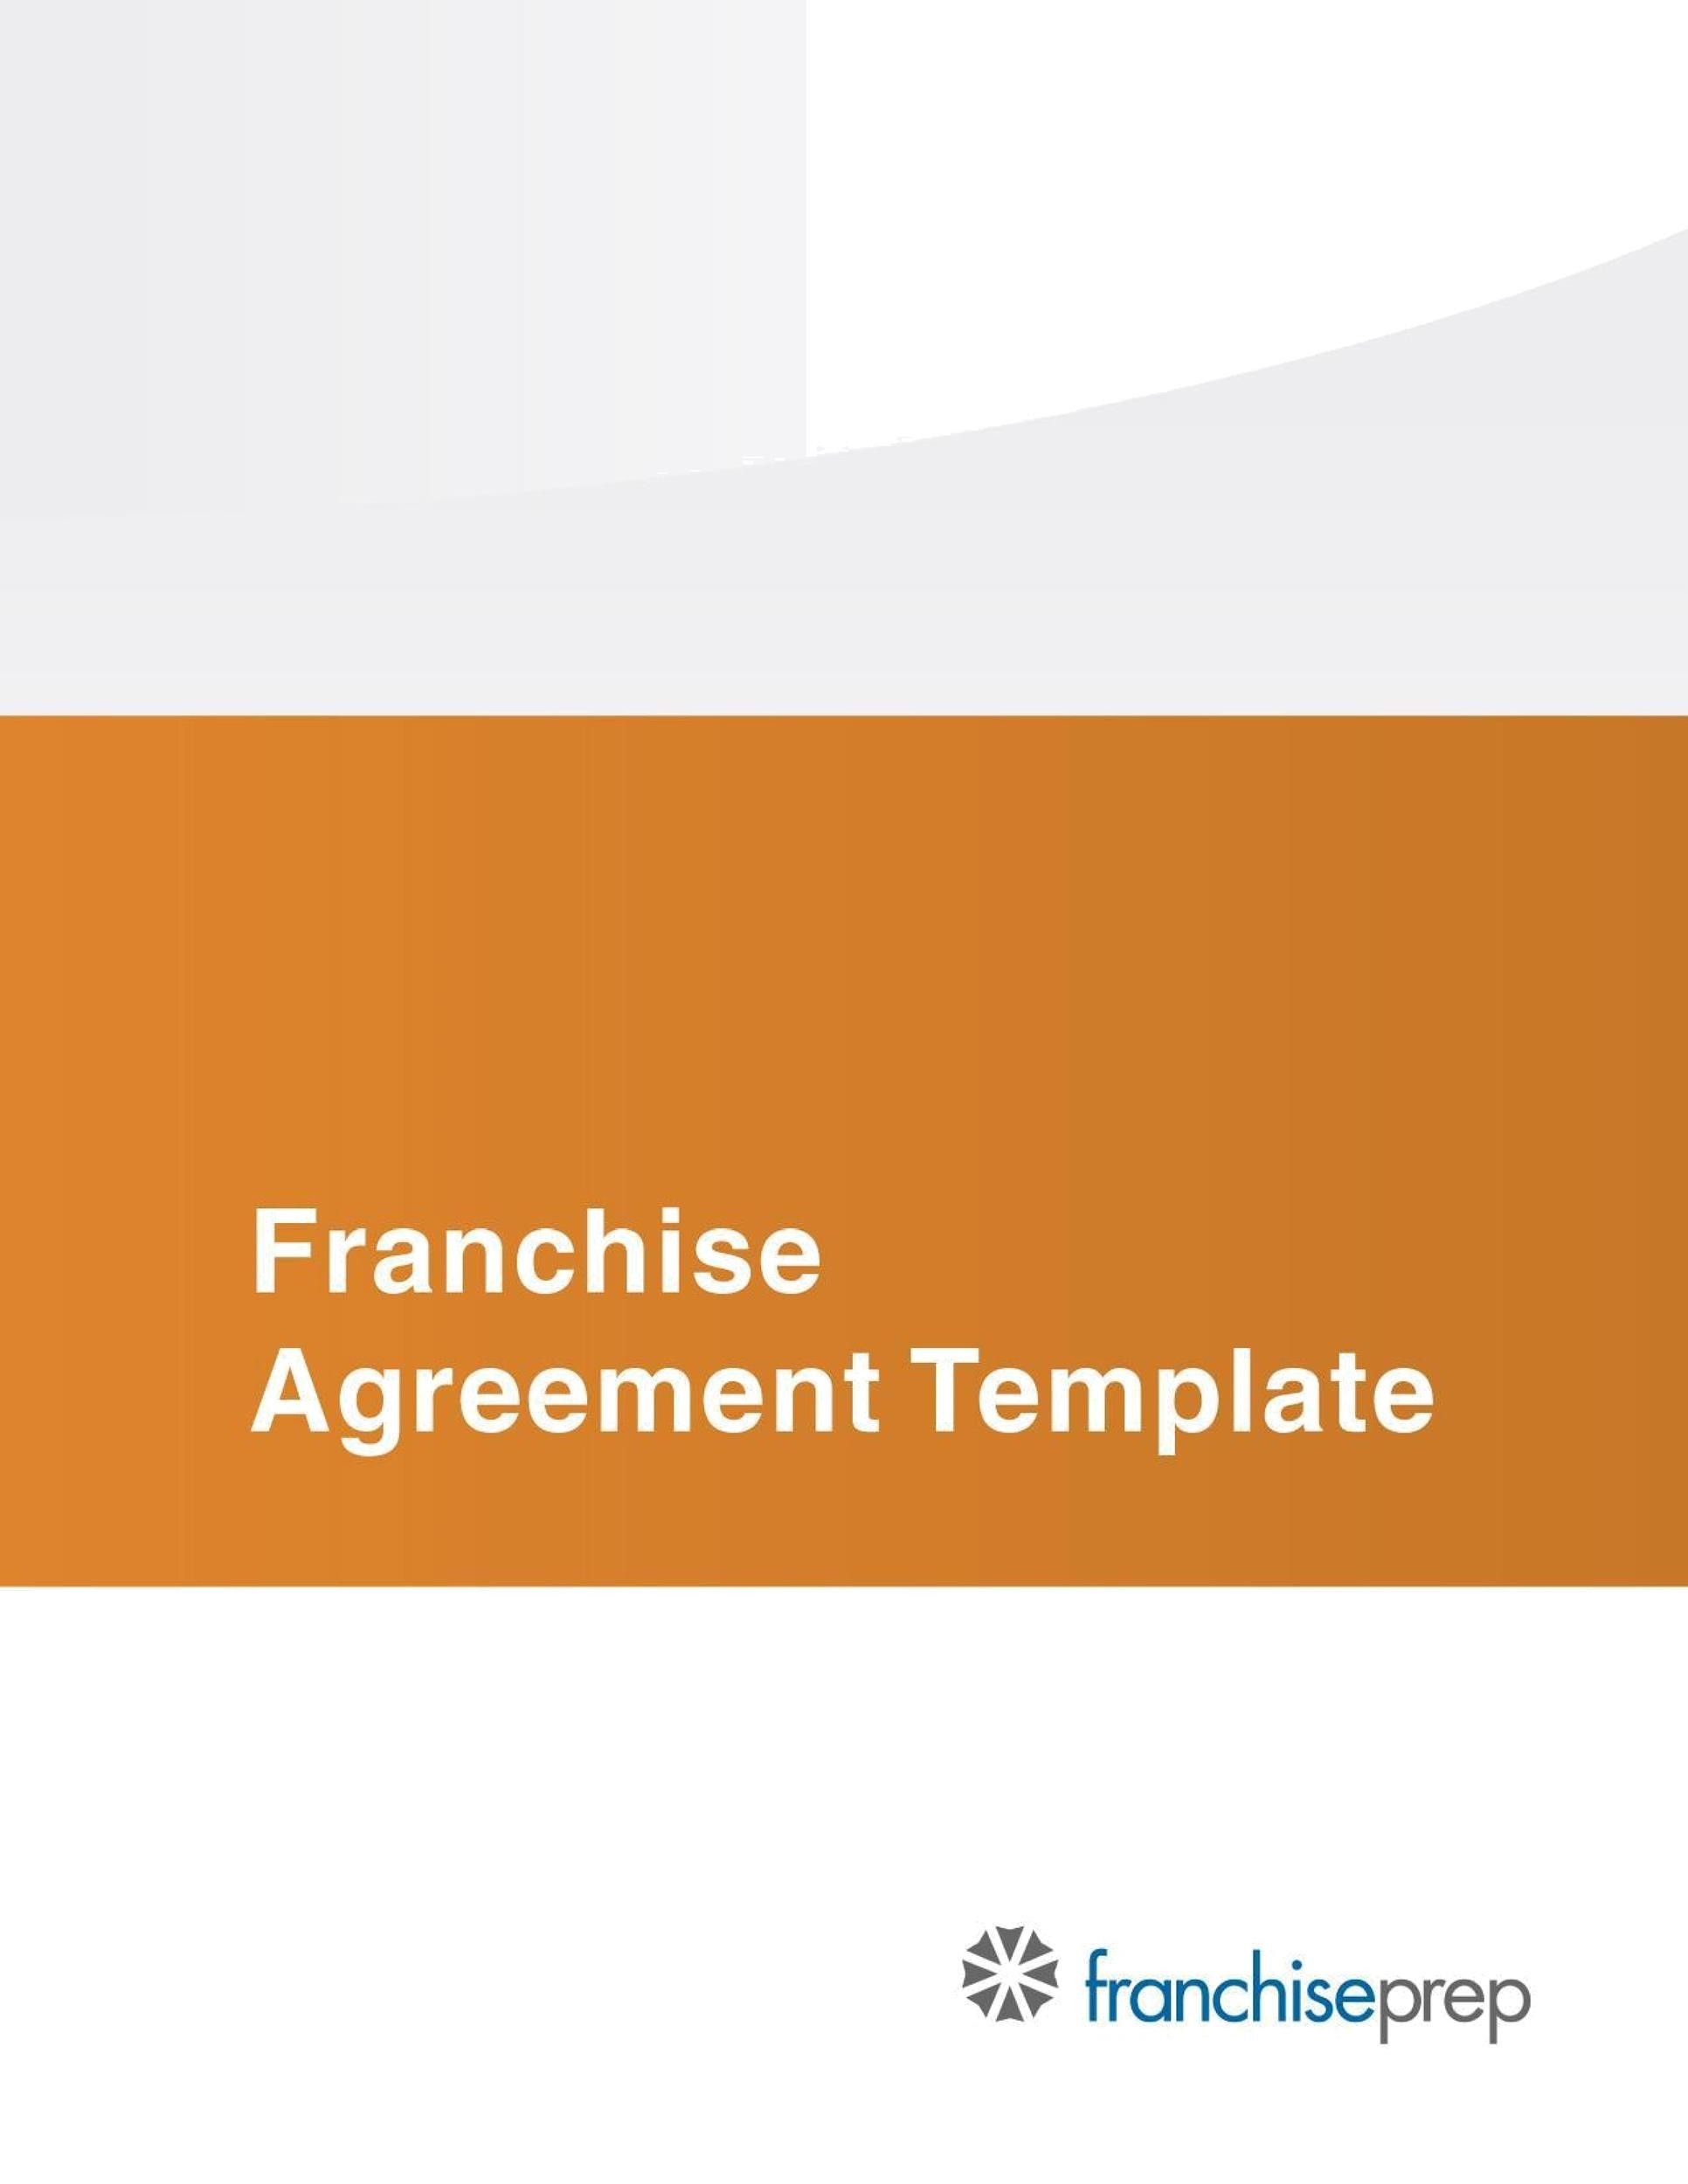 Free franchise agreement 01